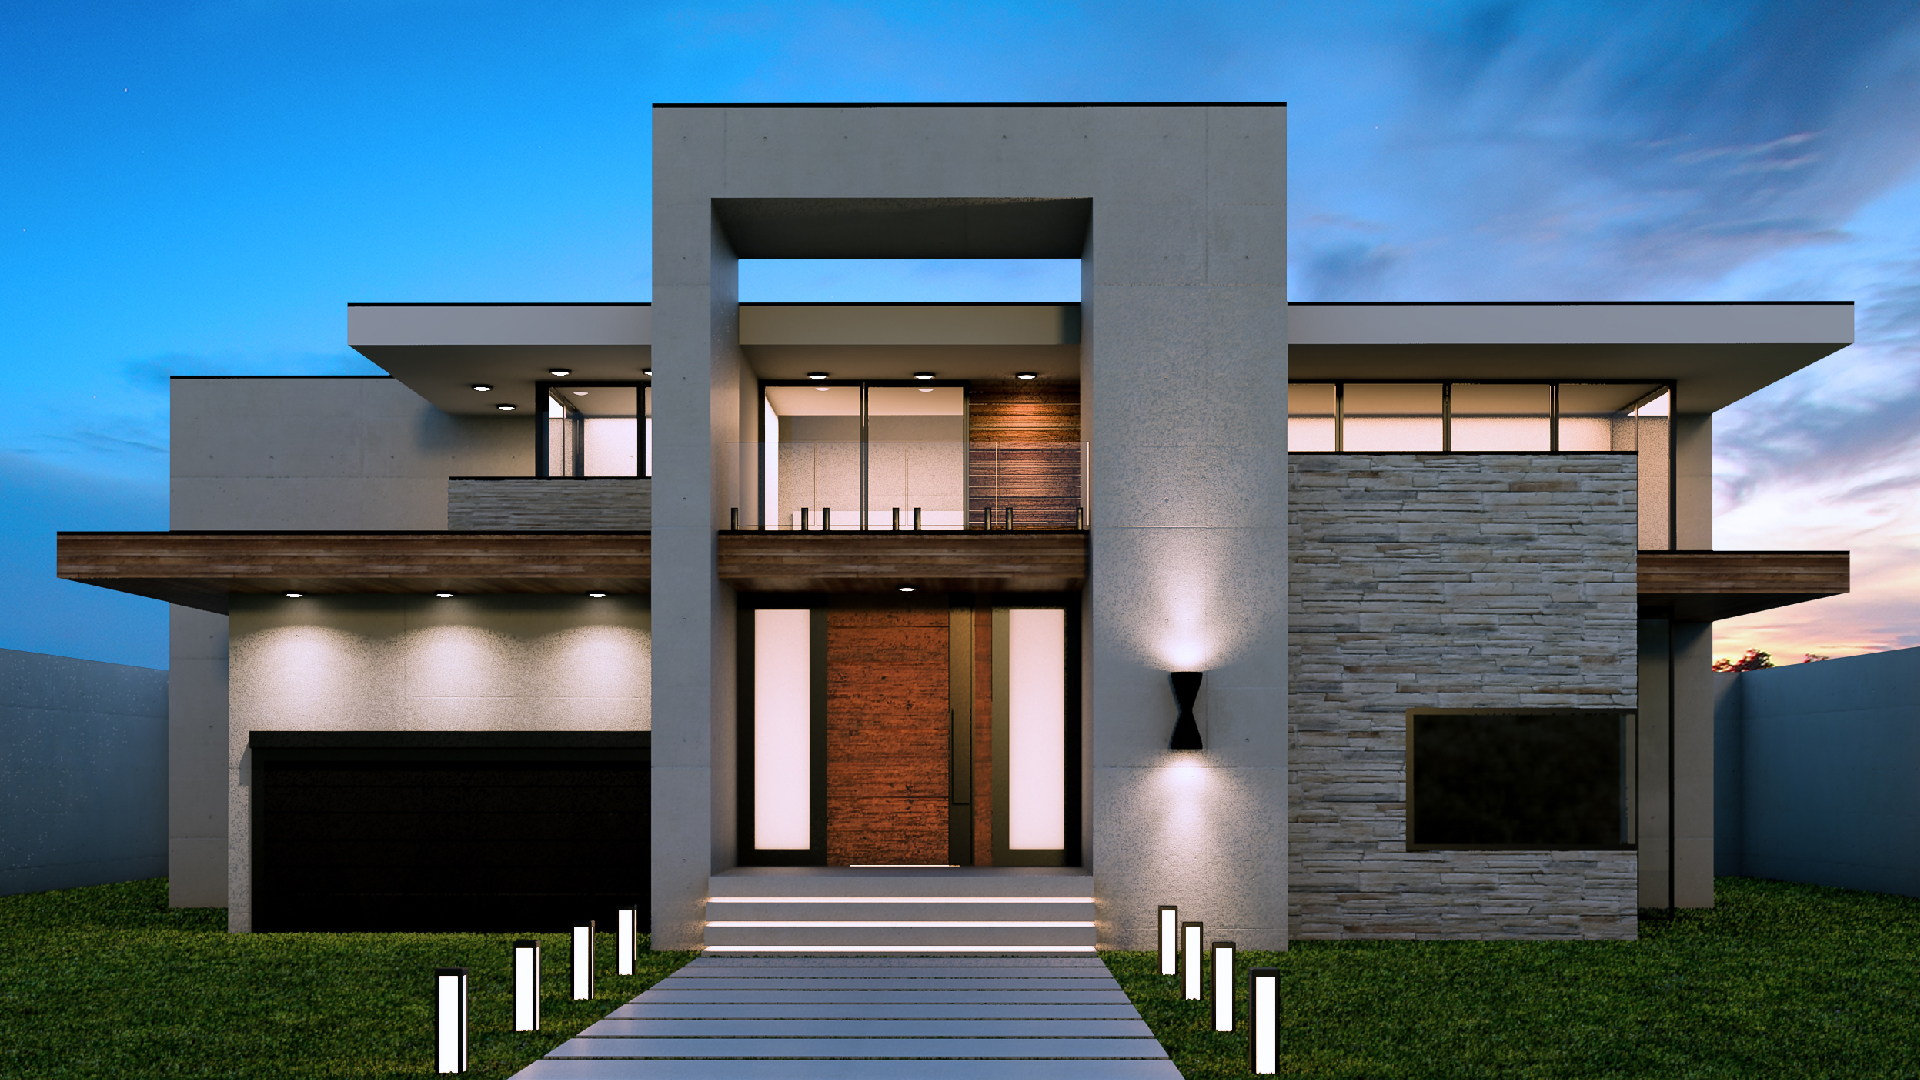 3d Modeling Wallpaper Solidworks Exterior Rendering Strategies With V Ray And 3ds Max